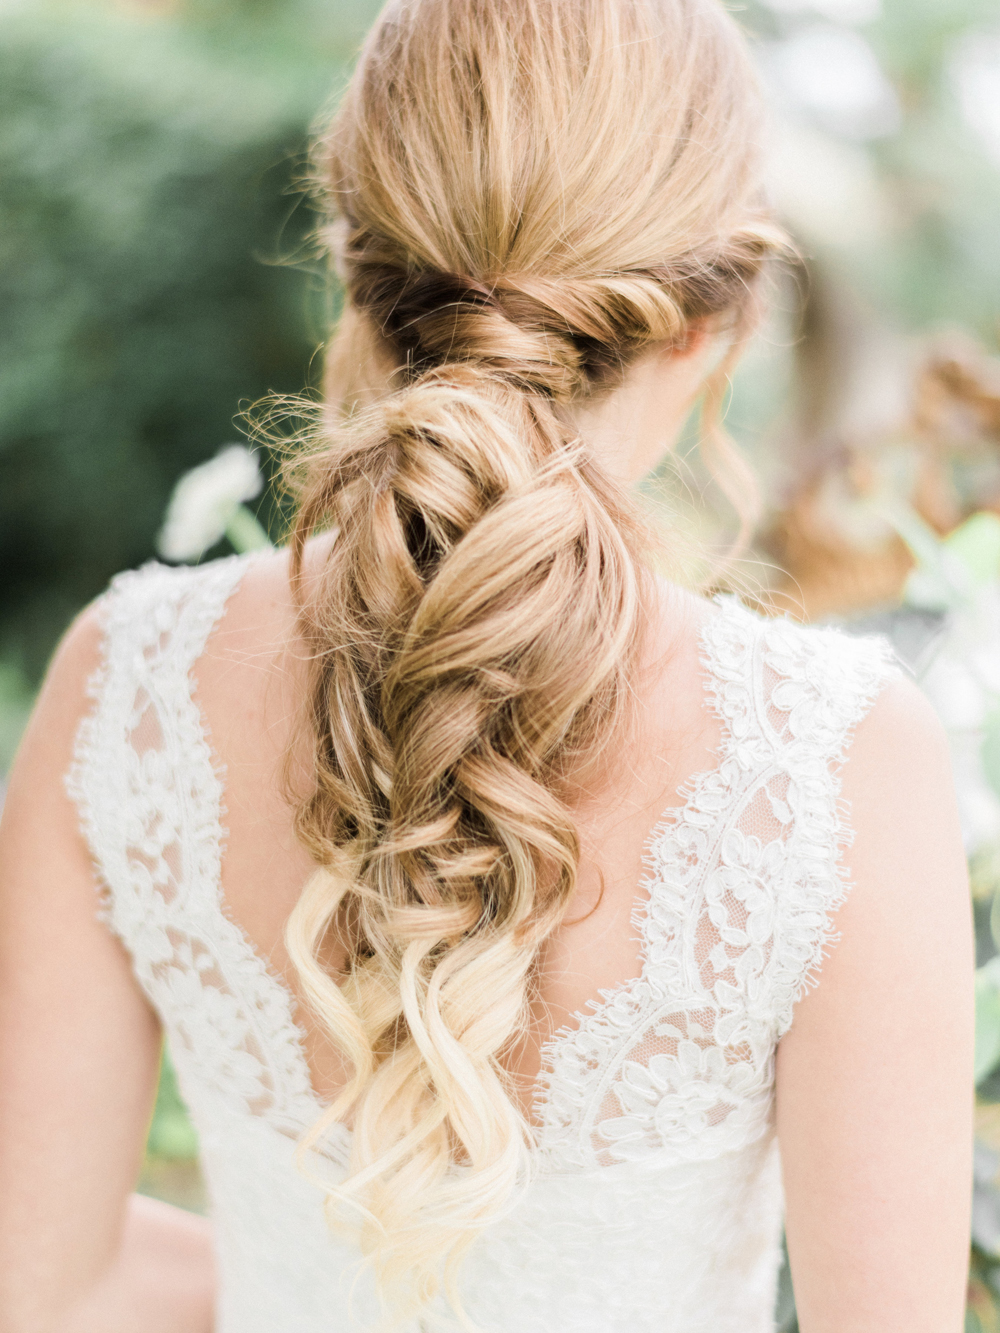 Long hair tied back into low curly pony tail relaxed wedding hairstyle